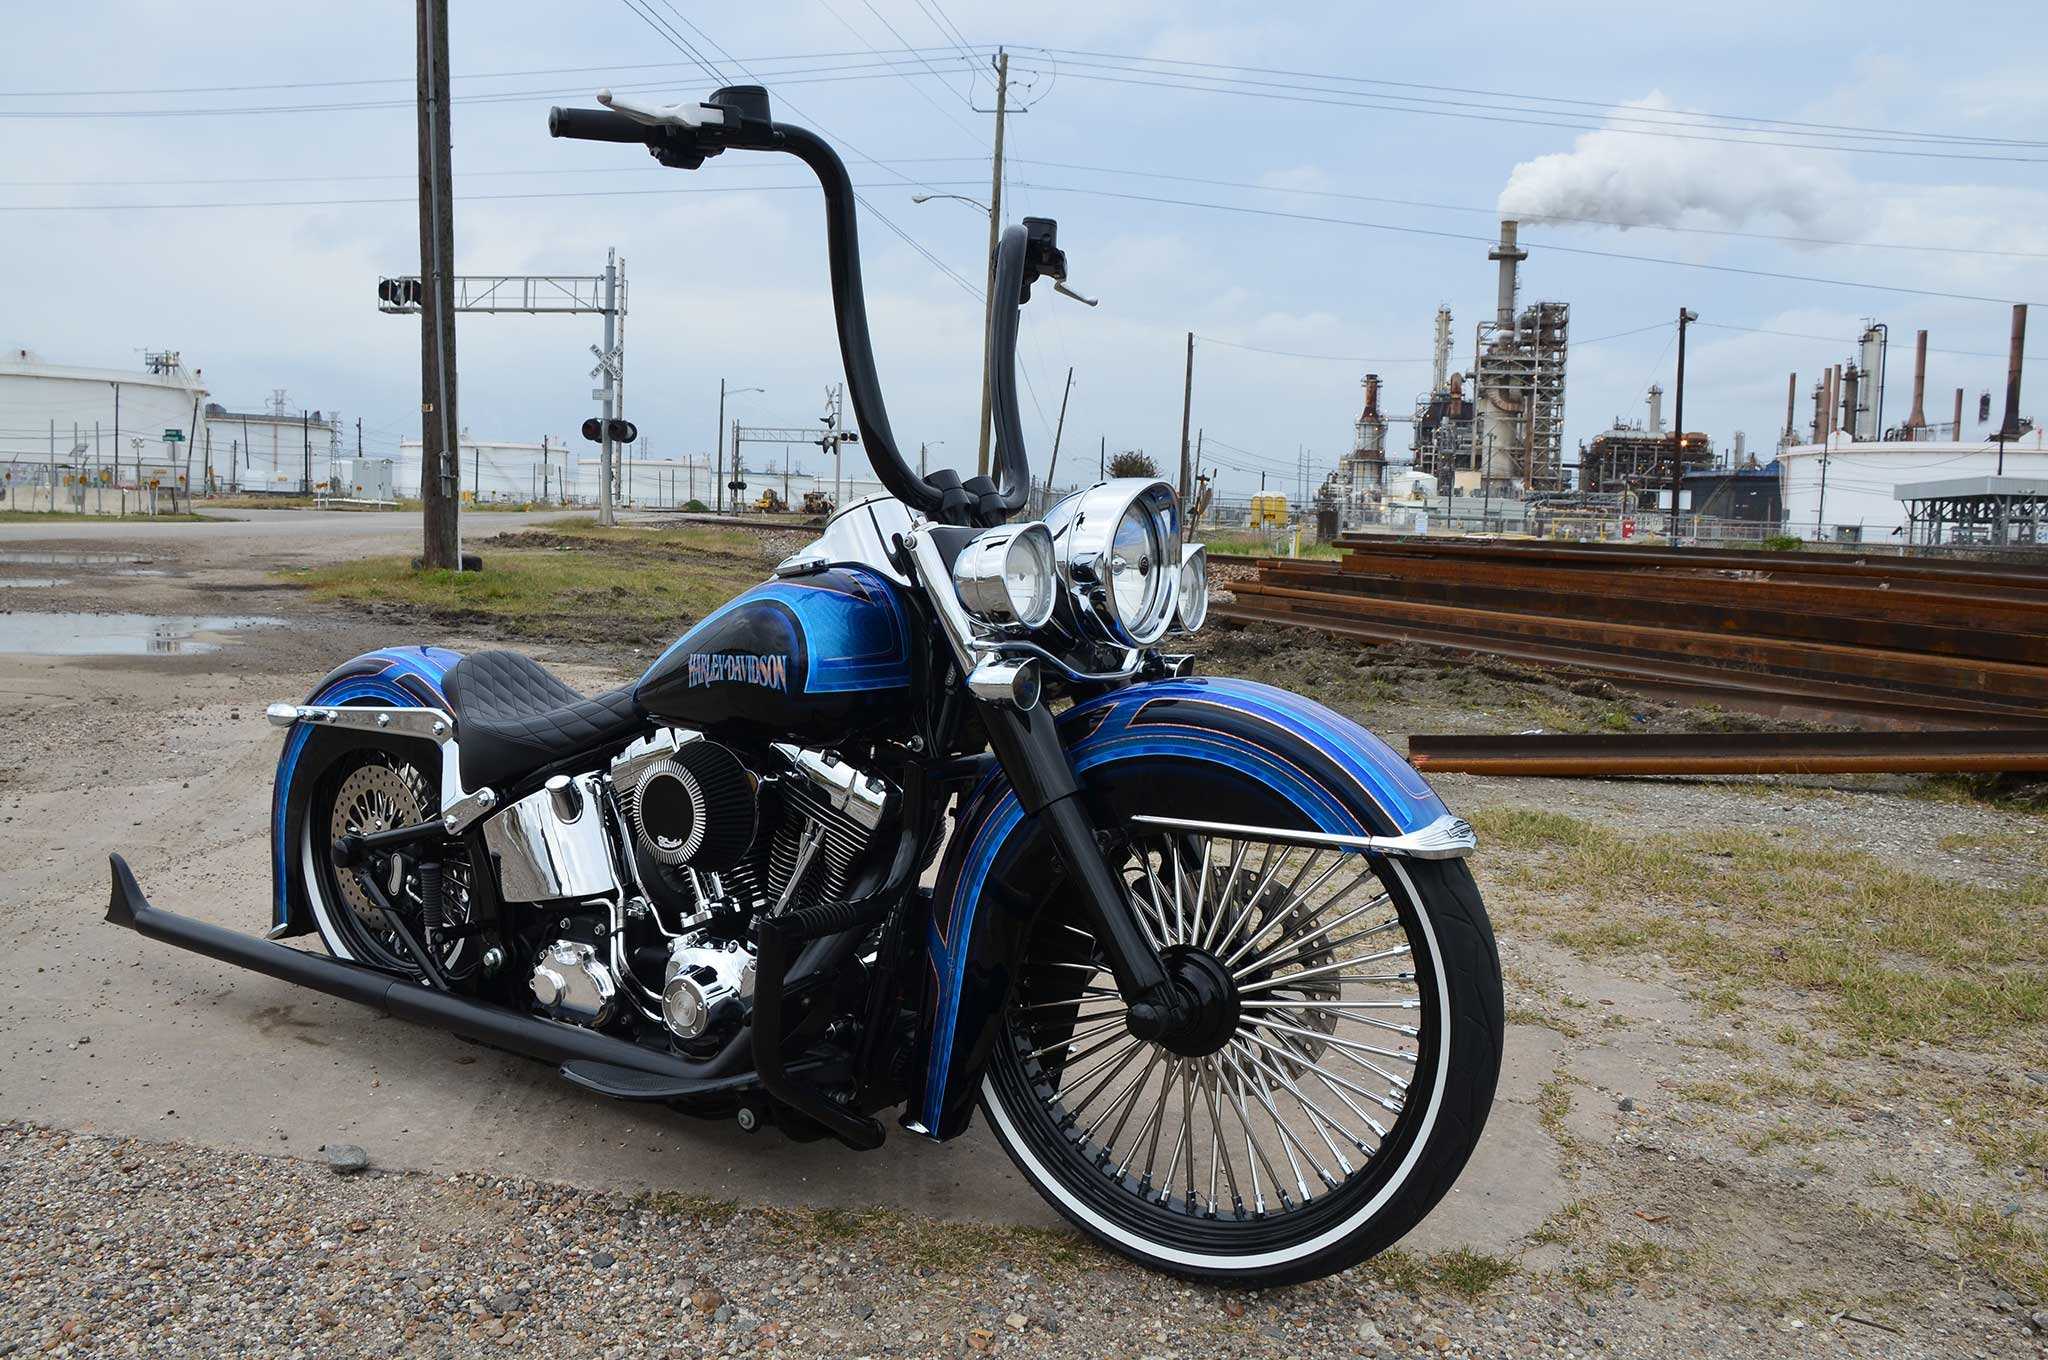 Bagger wallpapers 30 wallpapers adorable wallpapers - Old school harley davidson wallpaper ...